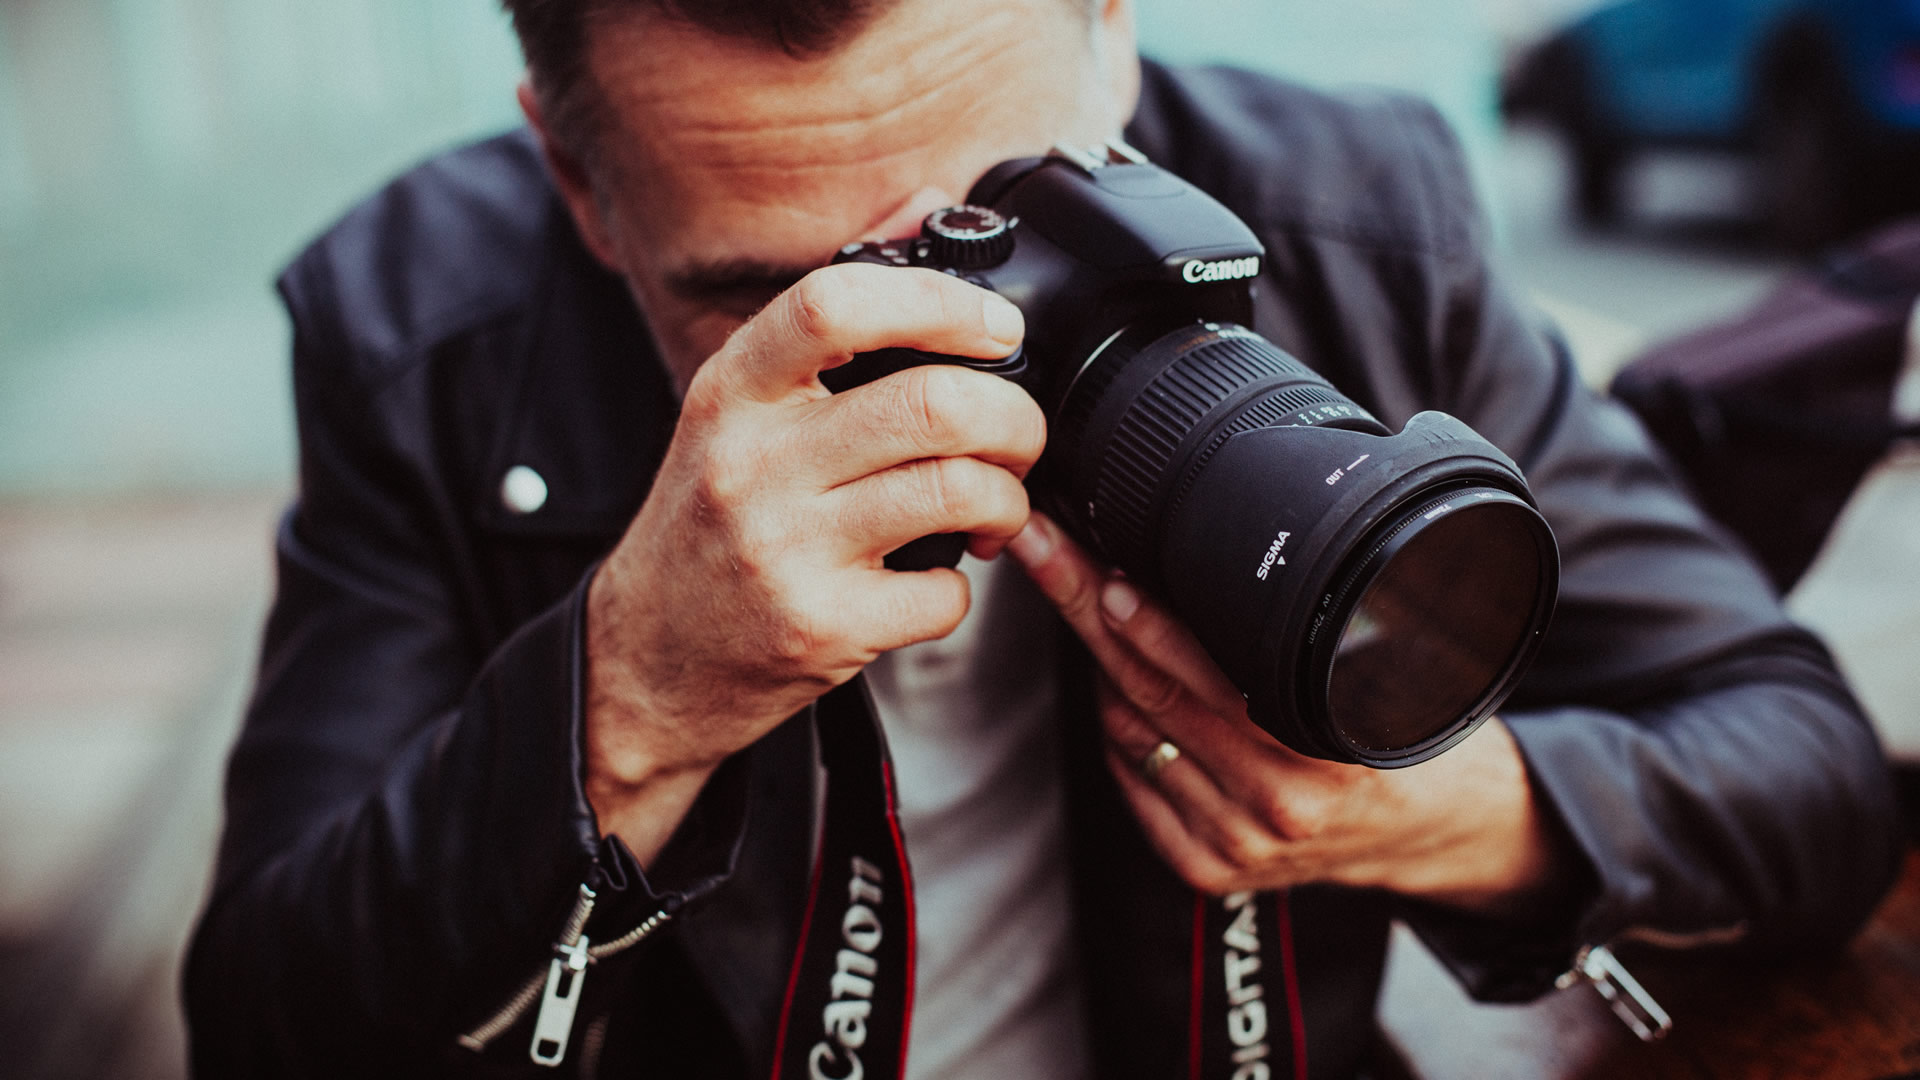 barry-casson-film-and-video-photo-by-clem-onojeghuo-143621-unsplash